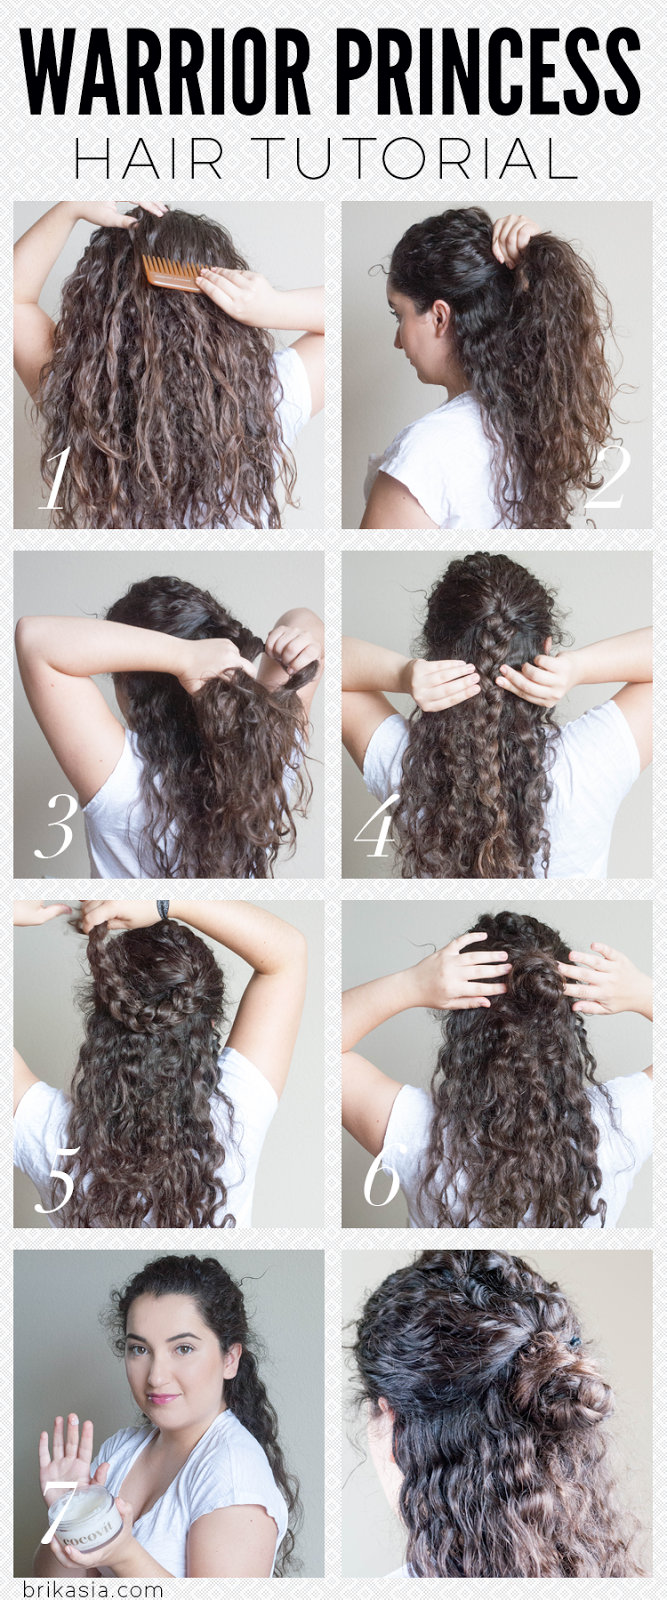 hairstyles for curly hair, how to style curly hair, curly hair solutions, curly hair tutorial, how to style curly hair, curly hair ideas, half up half down hair tutorial for curly hair, curly girls, ouidad, summer hair tutorial for curls, best products for curly hair